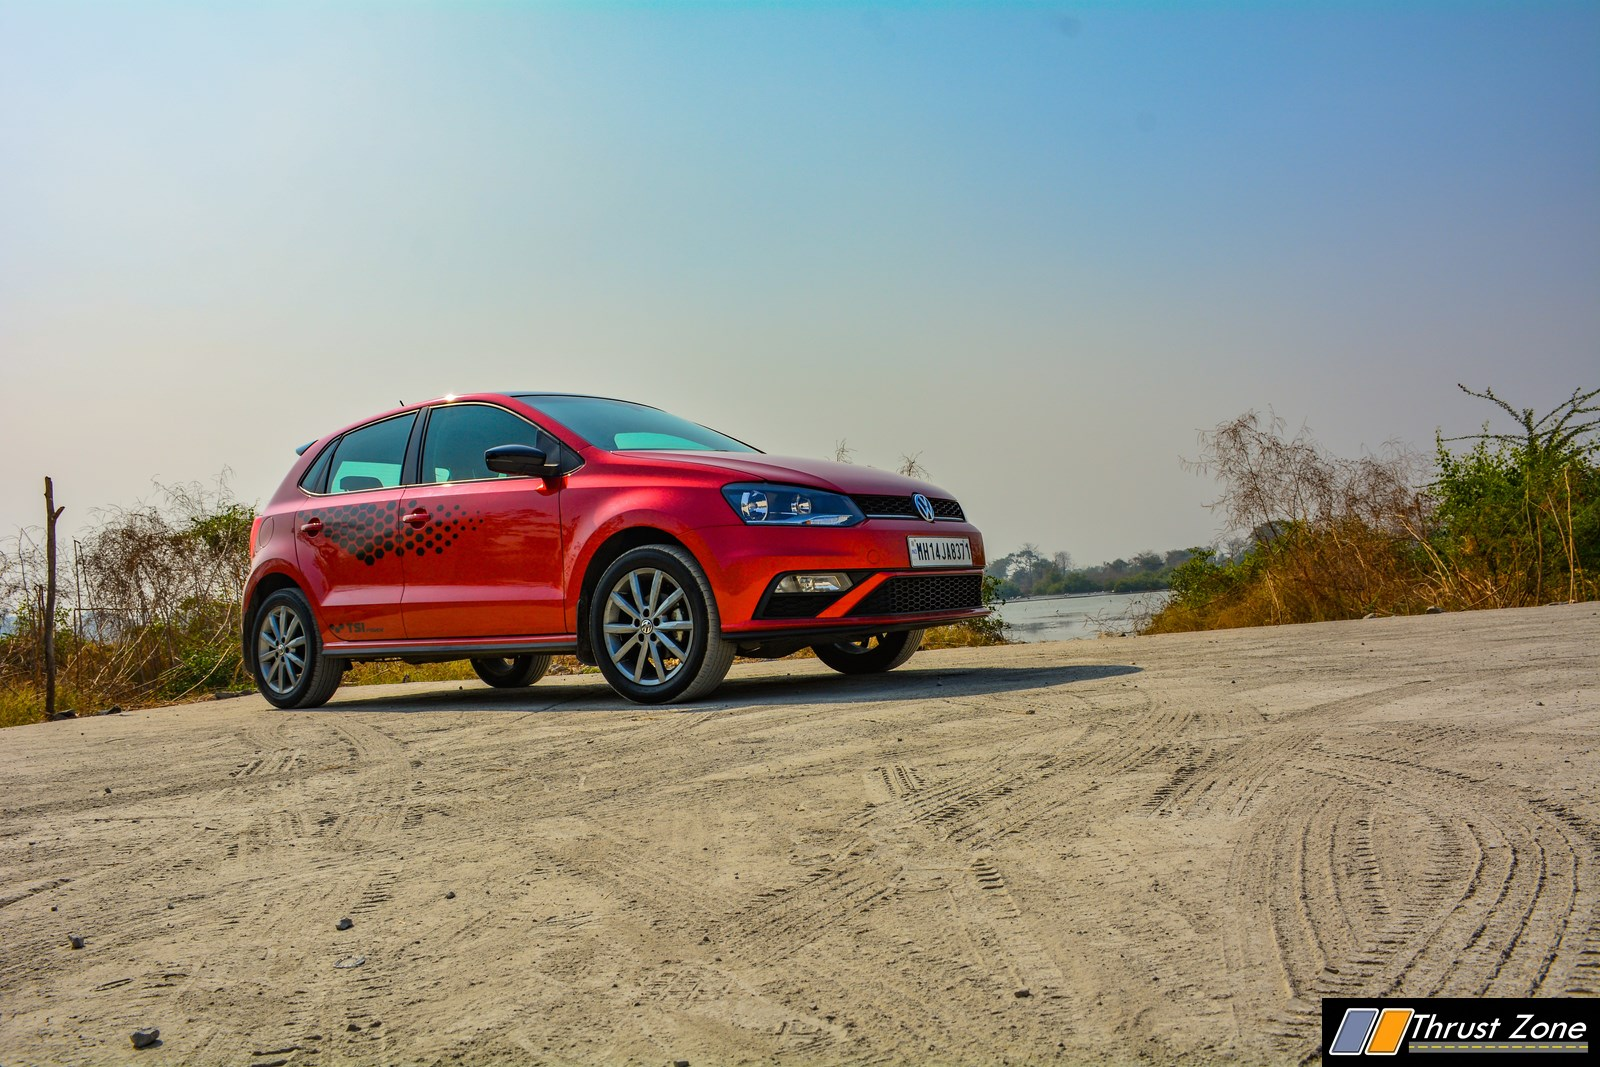 2021-Volkswagen-Polo-TSi-Review-Automatic-Manual-20